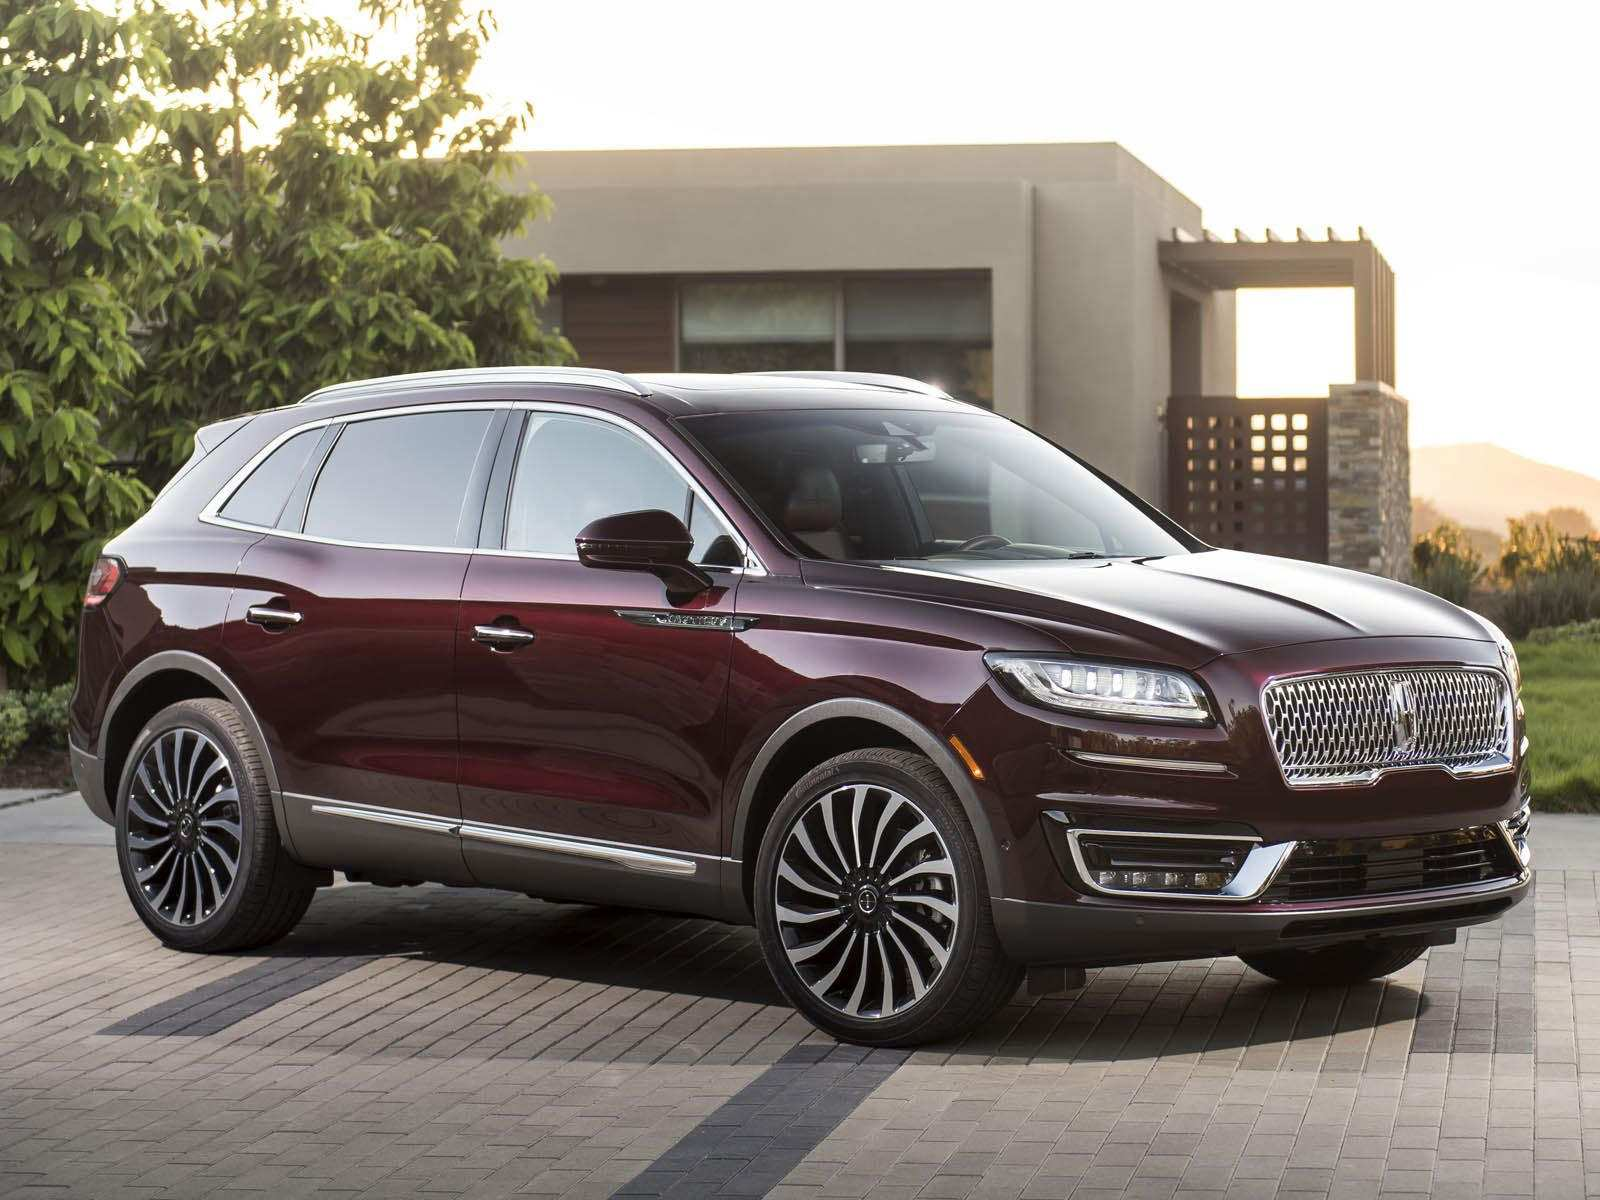 82 All New Best Ford Nautilus 2019 Rumors Overview with Best Ford Nautilus 2019 Rumors